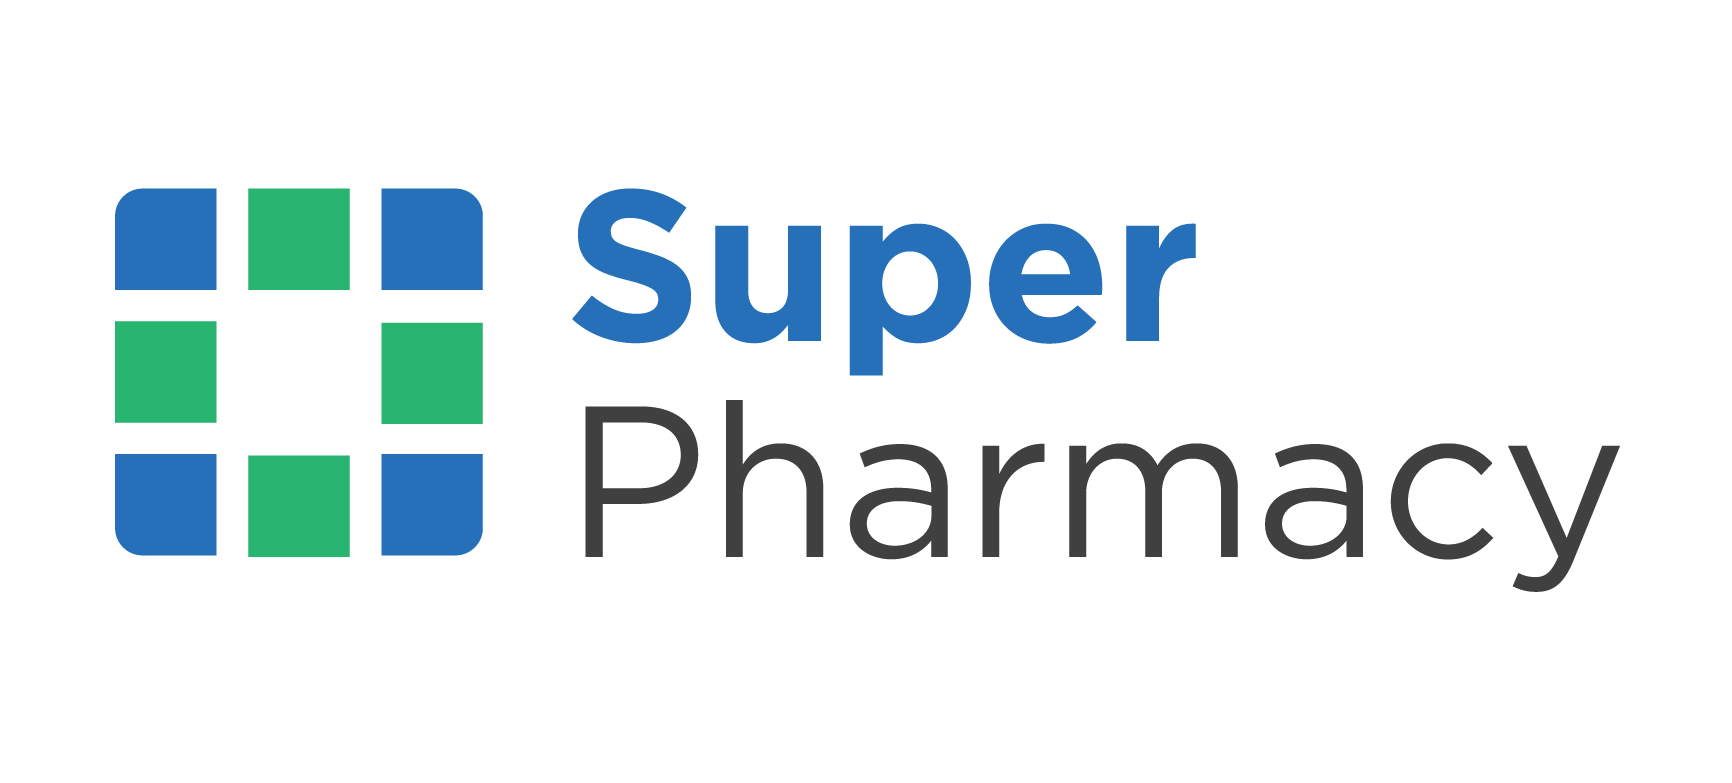 Superpharmacy Logo Vertical RGB 01 - Where To Buy